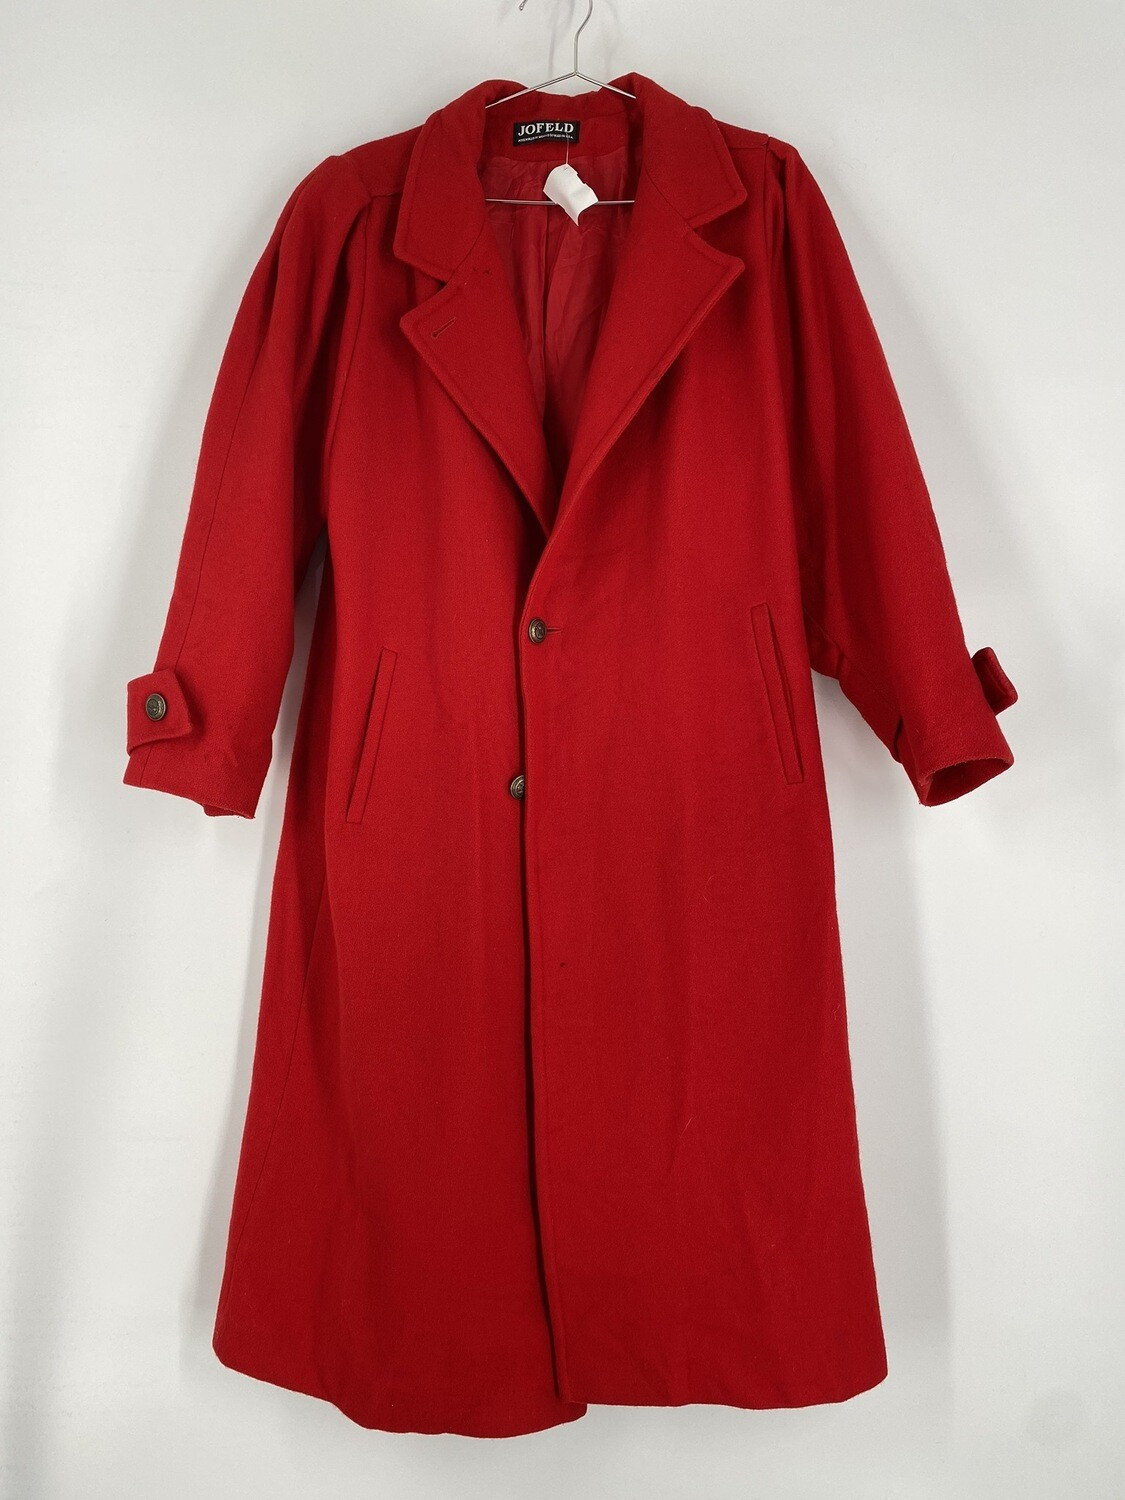 Jofeld Red Trench Coat Size L